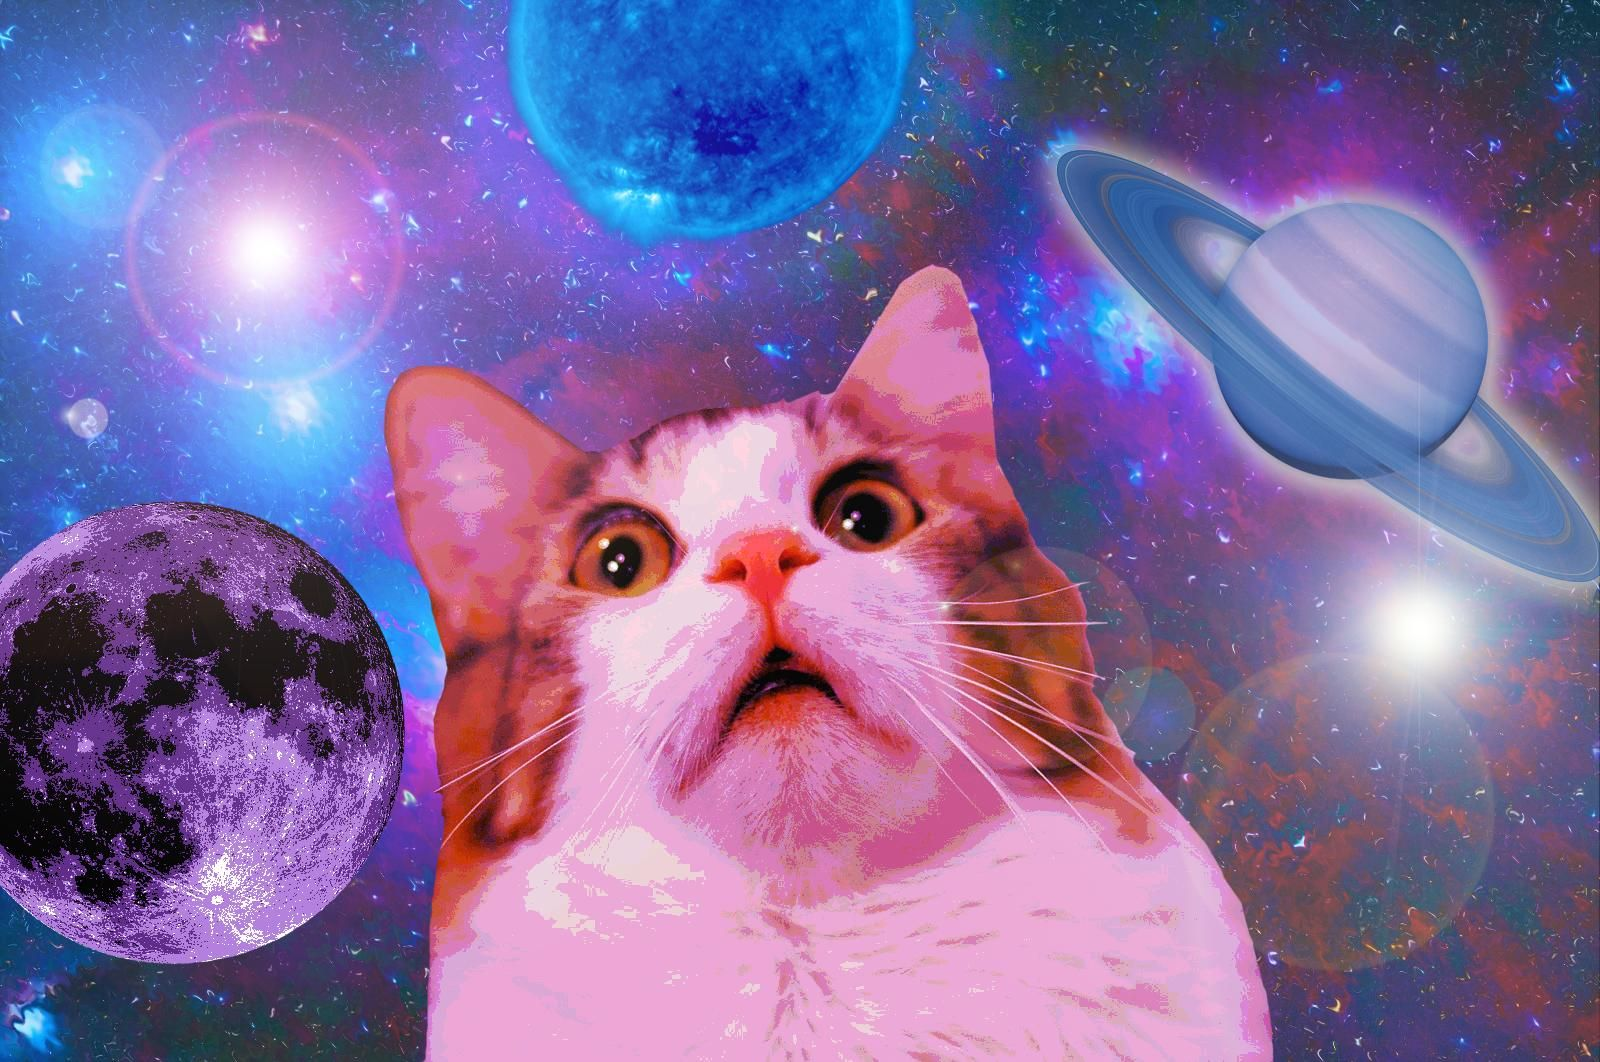 Funny Space Cat Wallpaper 1600x1062 ID51294 in 2020